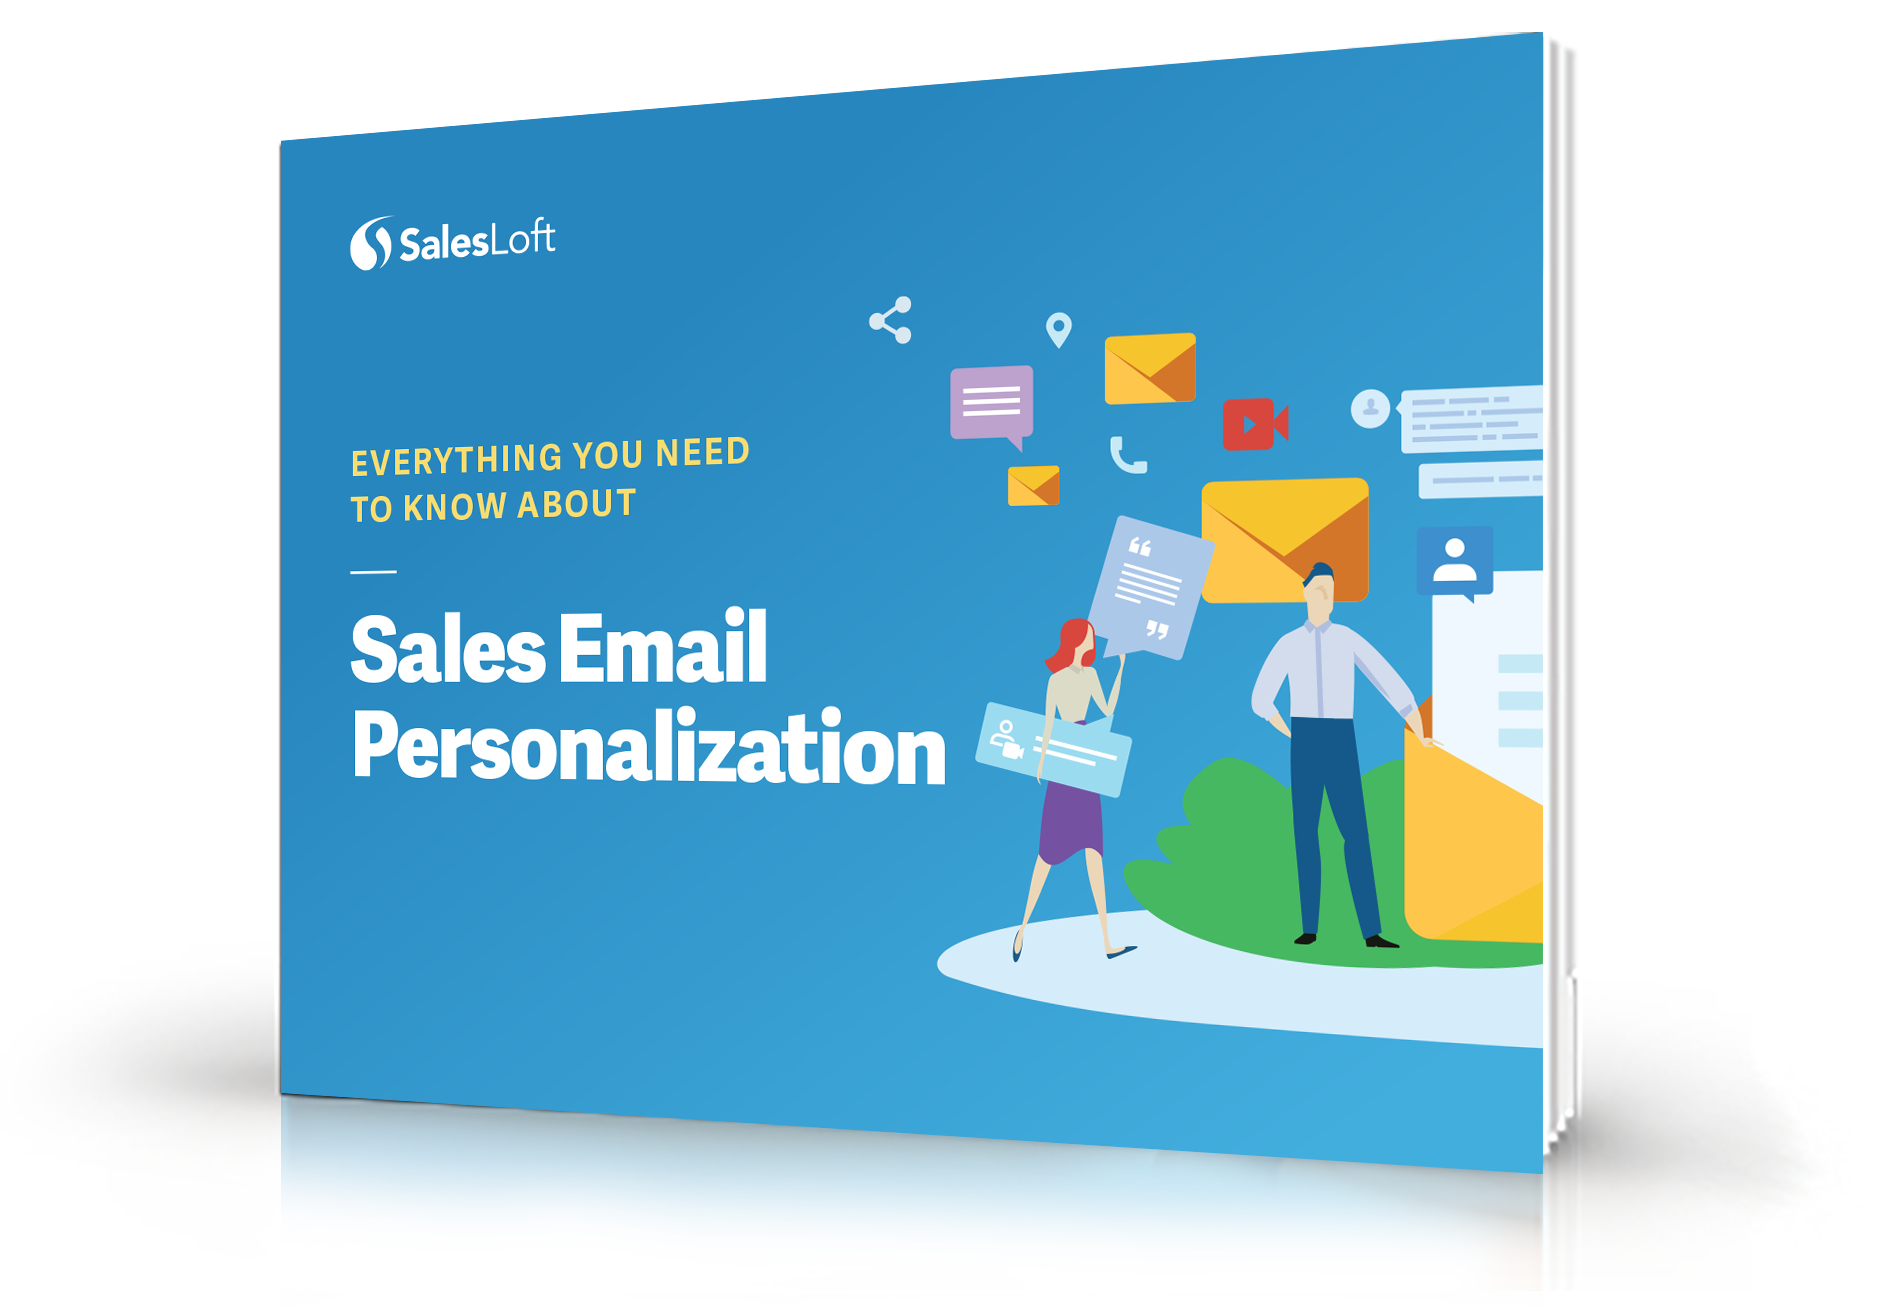 Everything You Need to Know About Sales Email Personalization